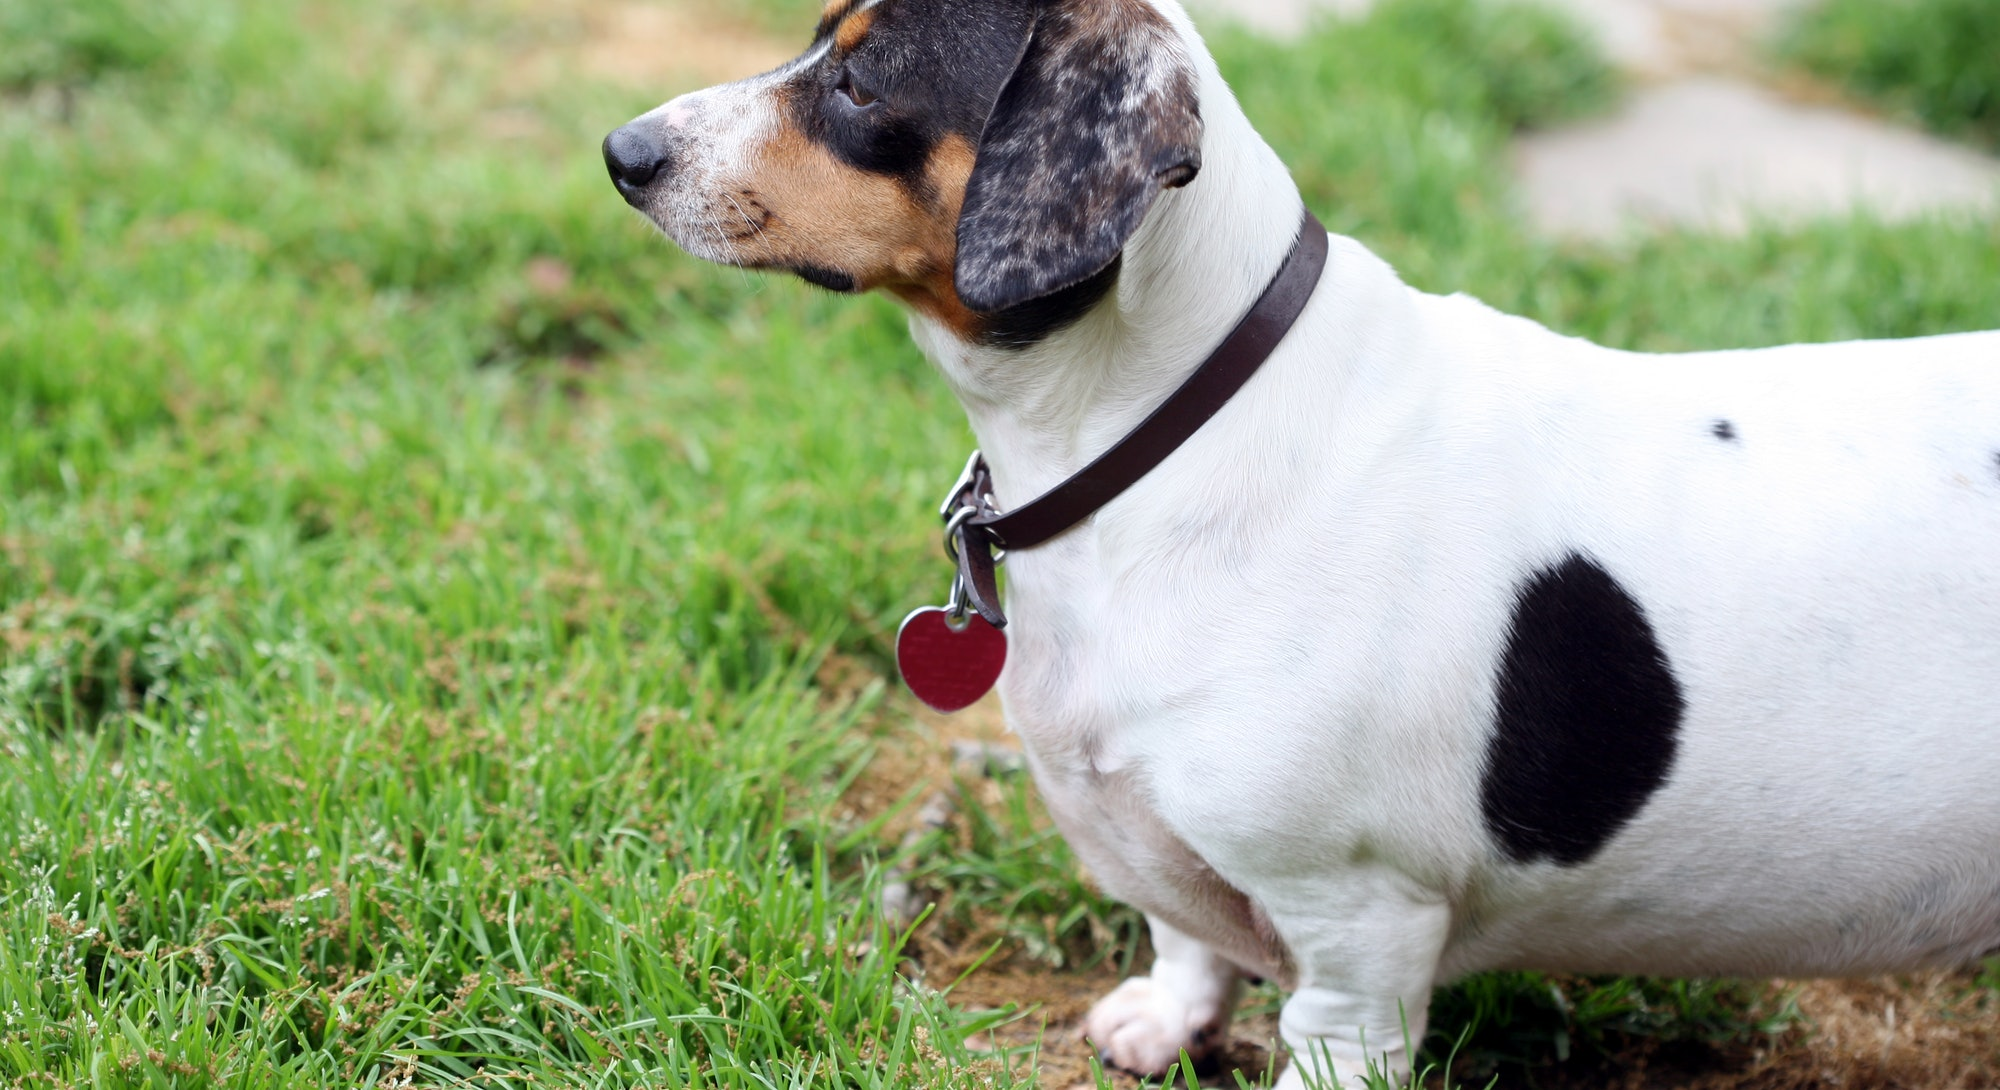 White and black dachshund standing at the grass